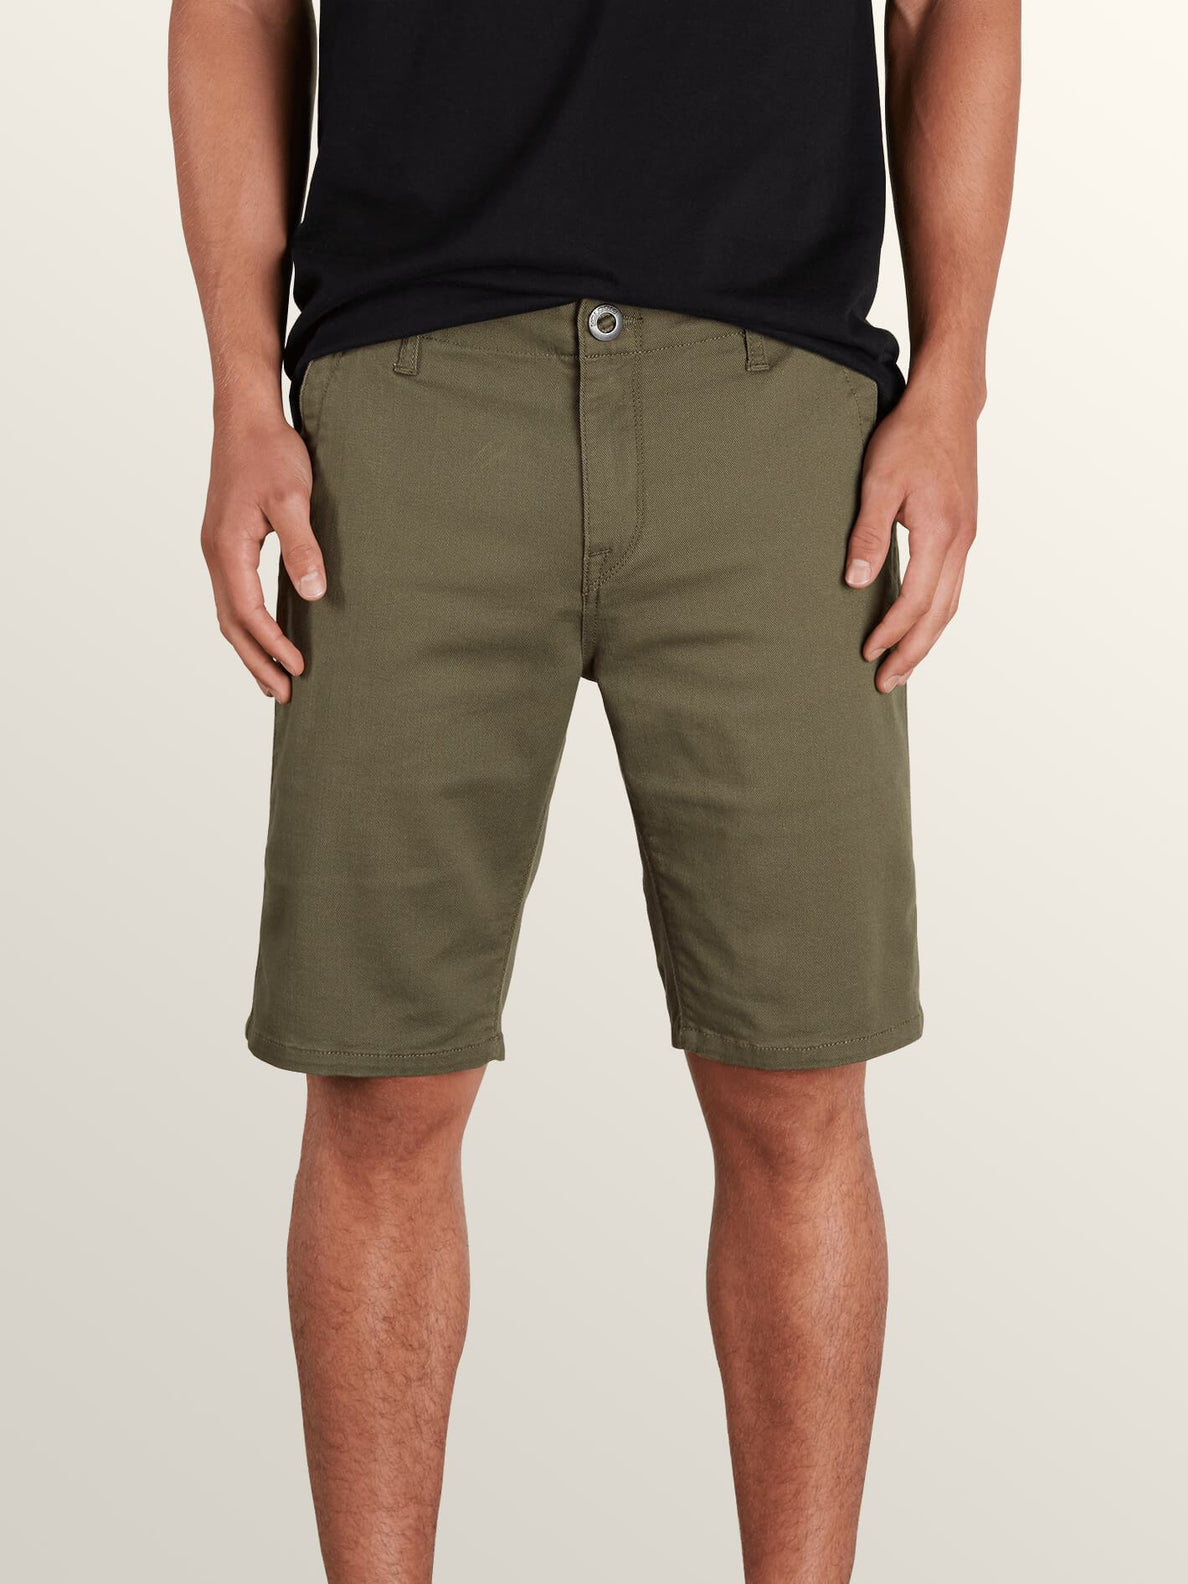 Vsm Prowler Shorts In Snow Military, Front View